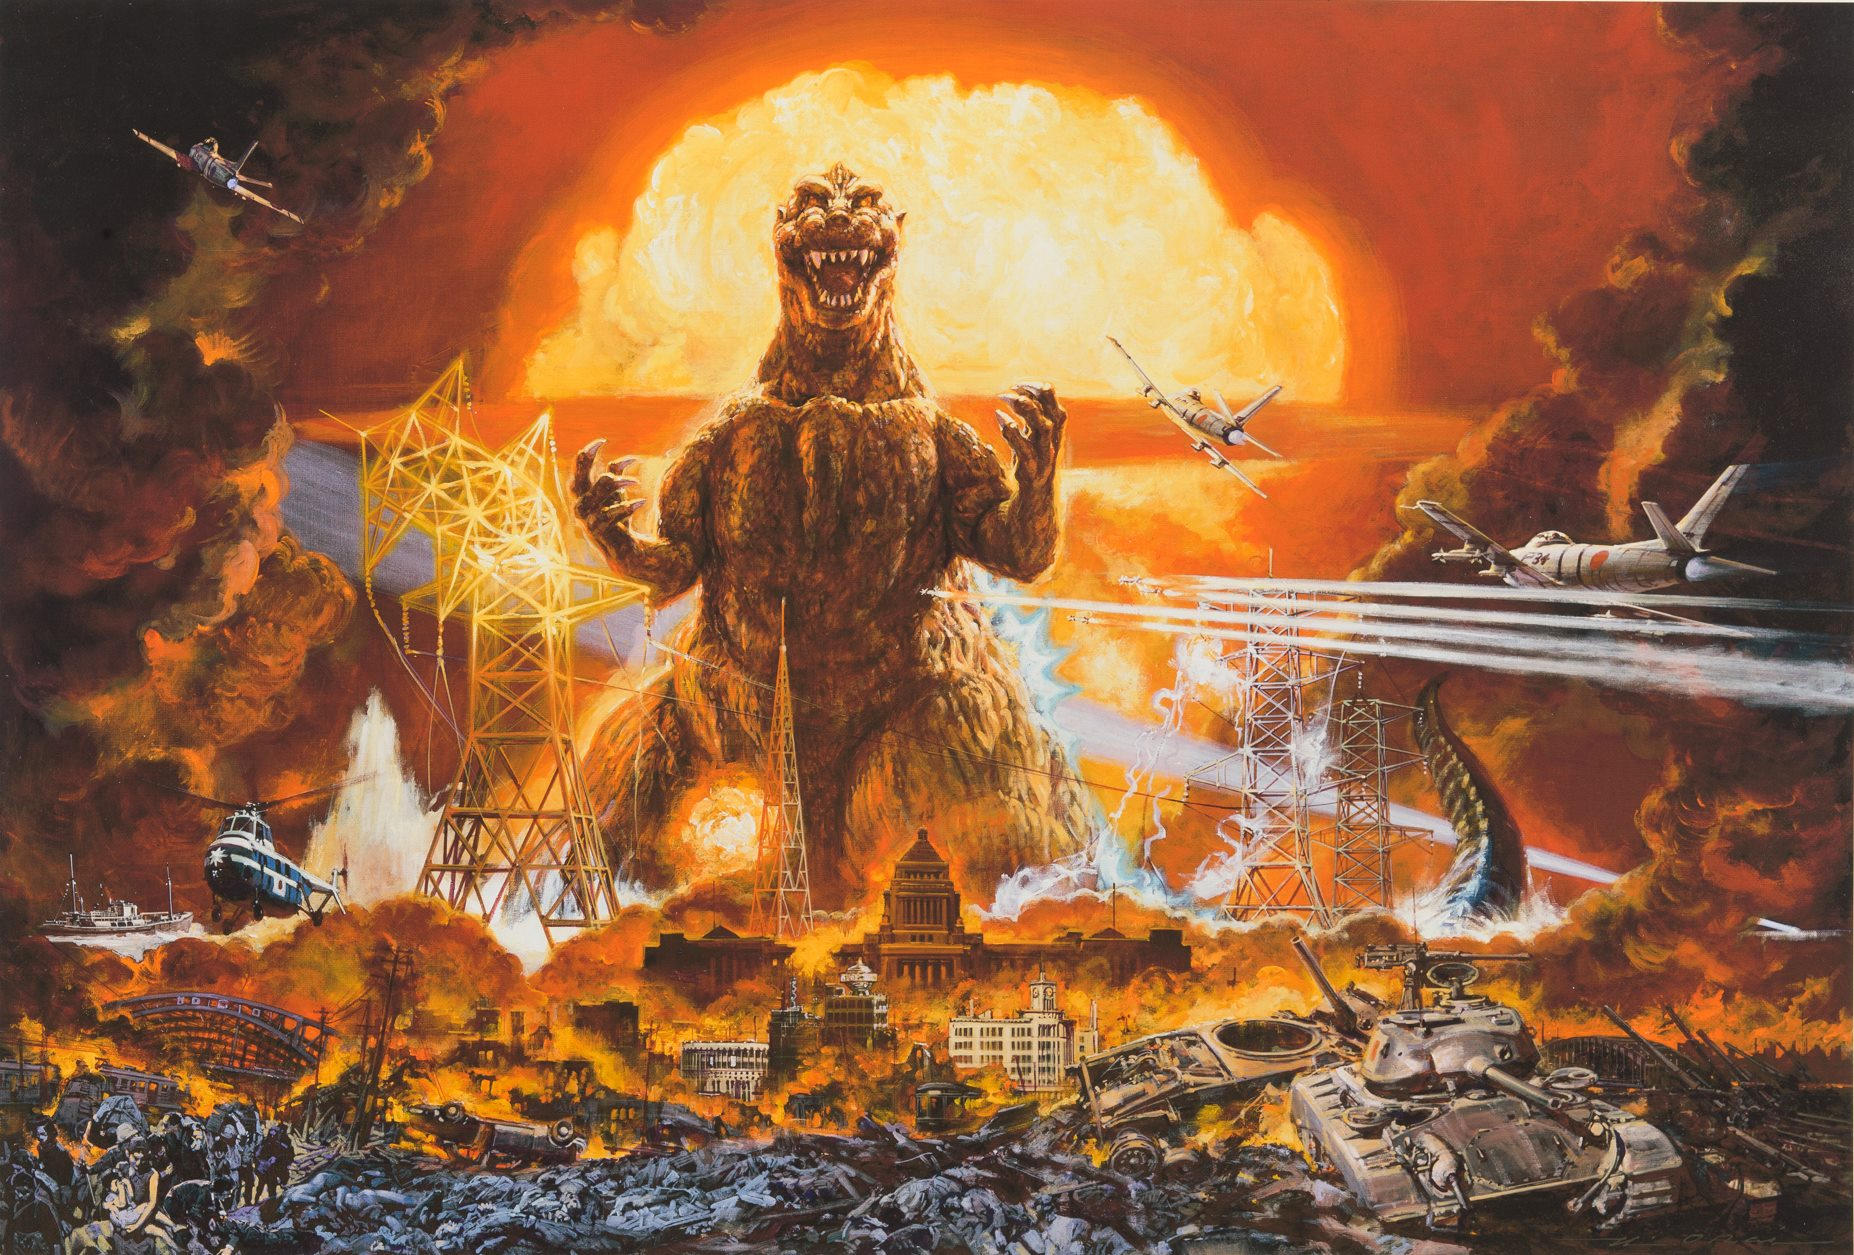 Top 10 'Godzilla' Movies Of All Time Ranked